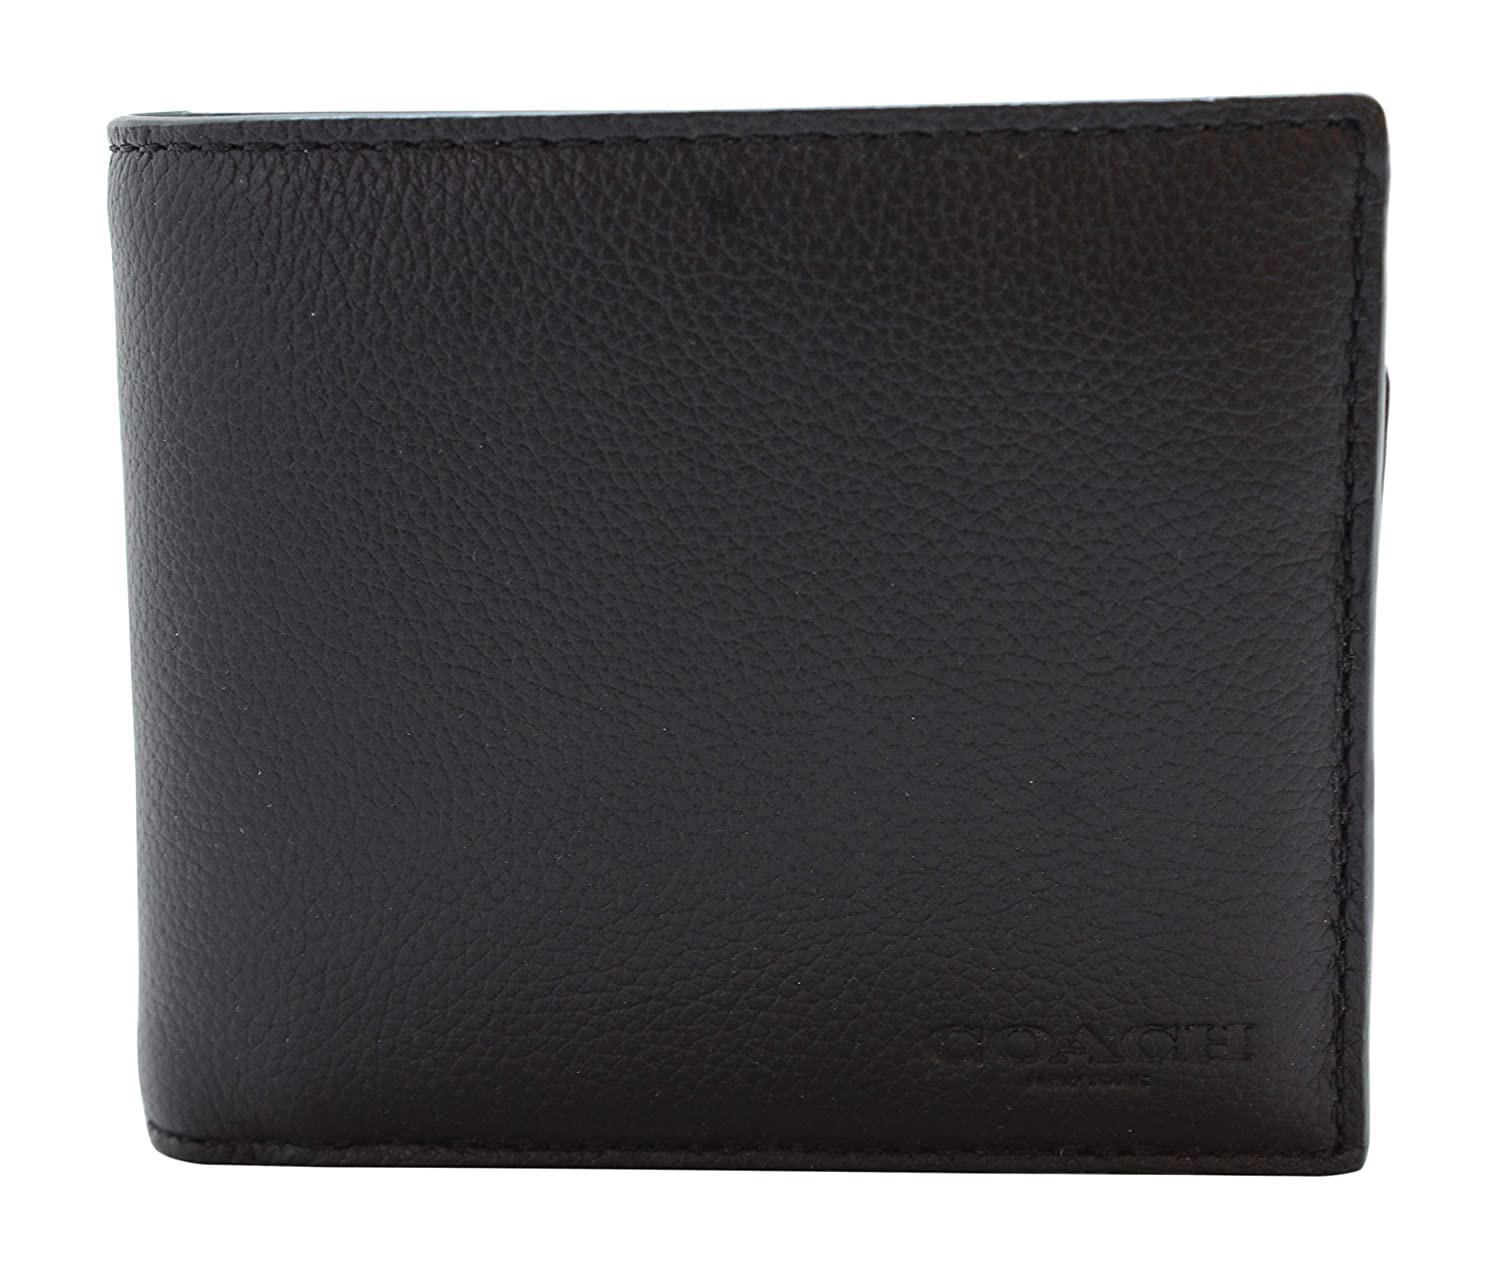 8dc1ae78bd41 Amazon.com  COACH Compact ID Sport Calf Bifold Wallet in Black 74991 ...